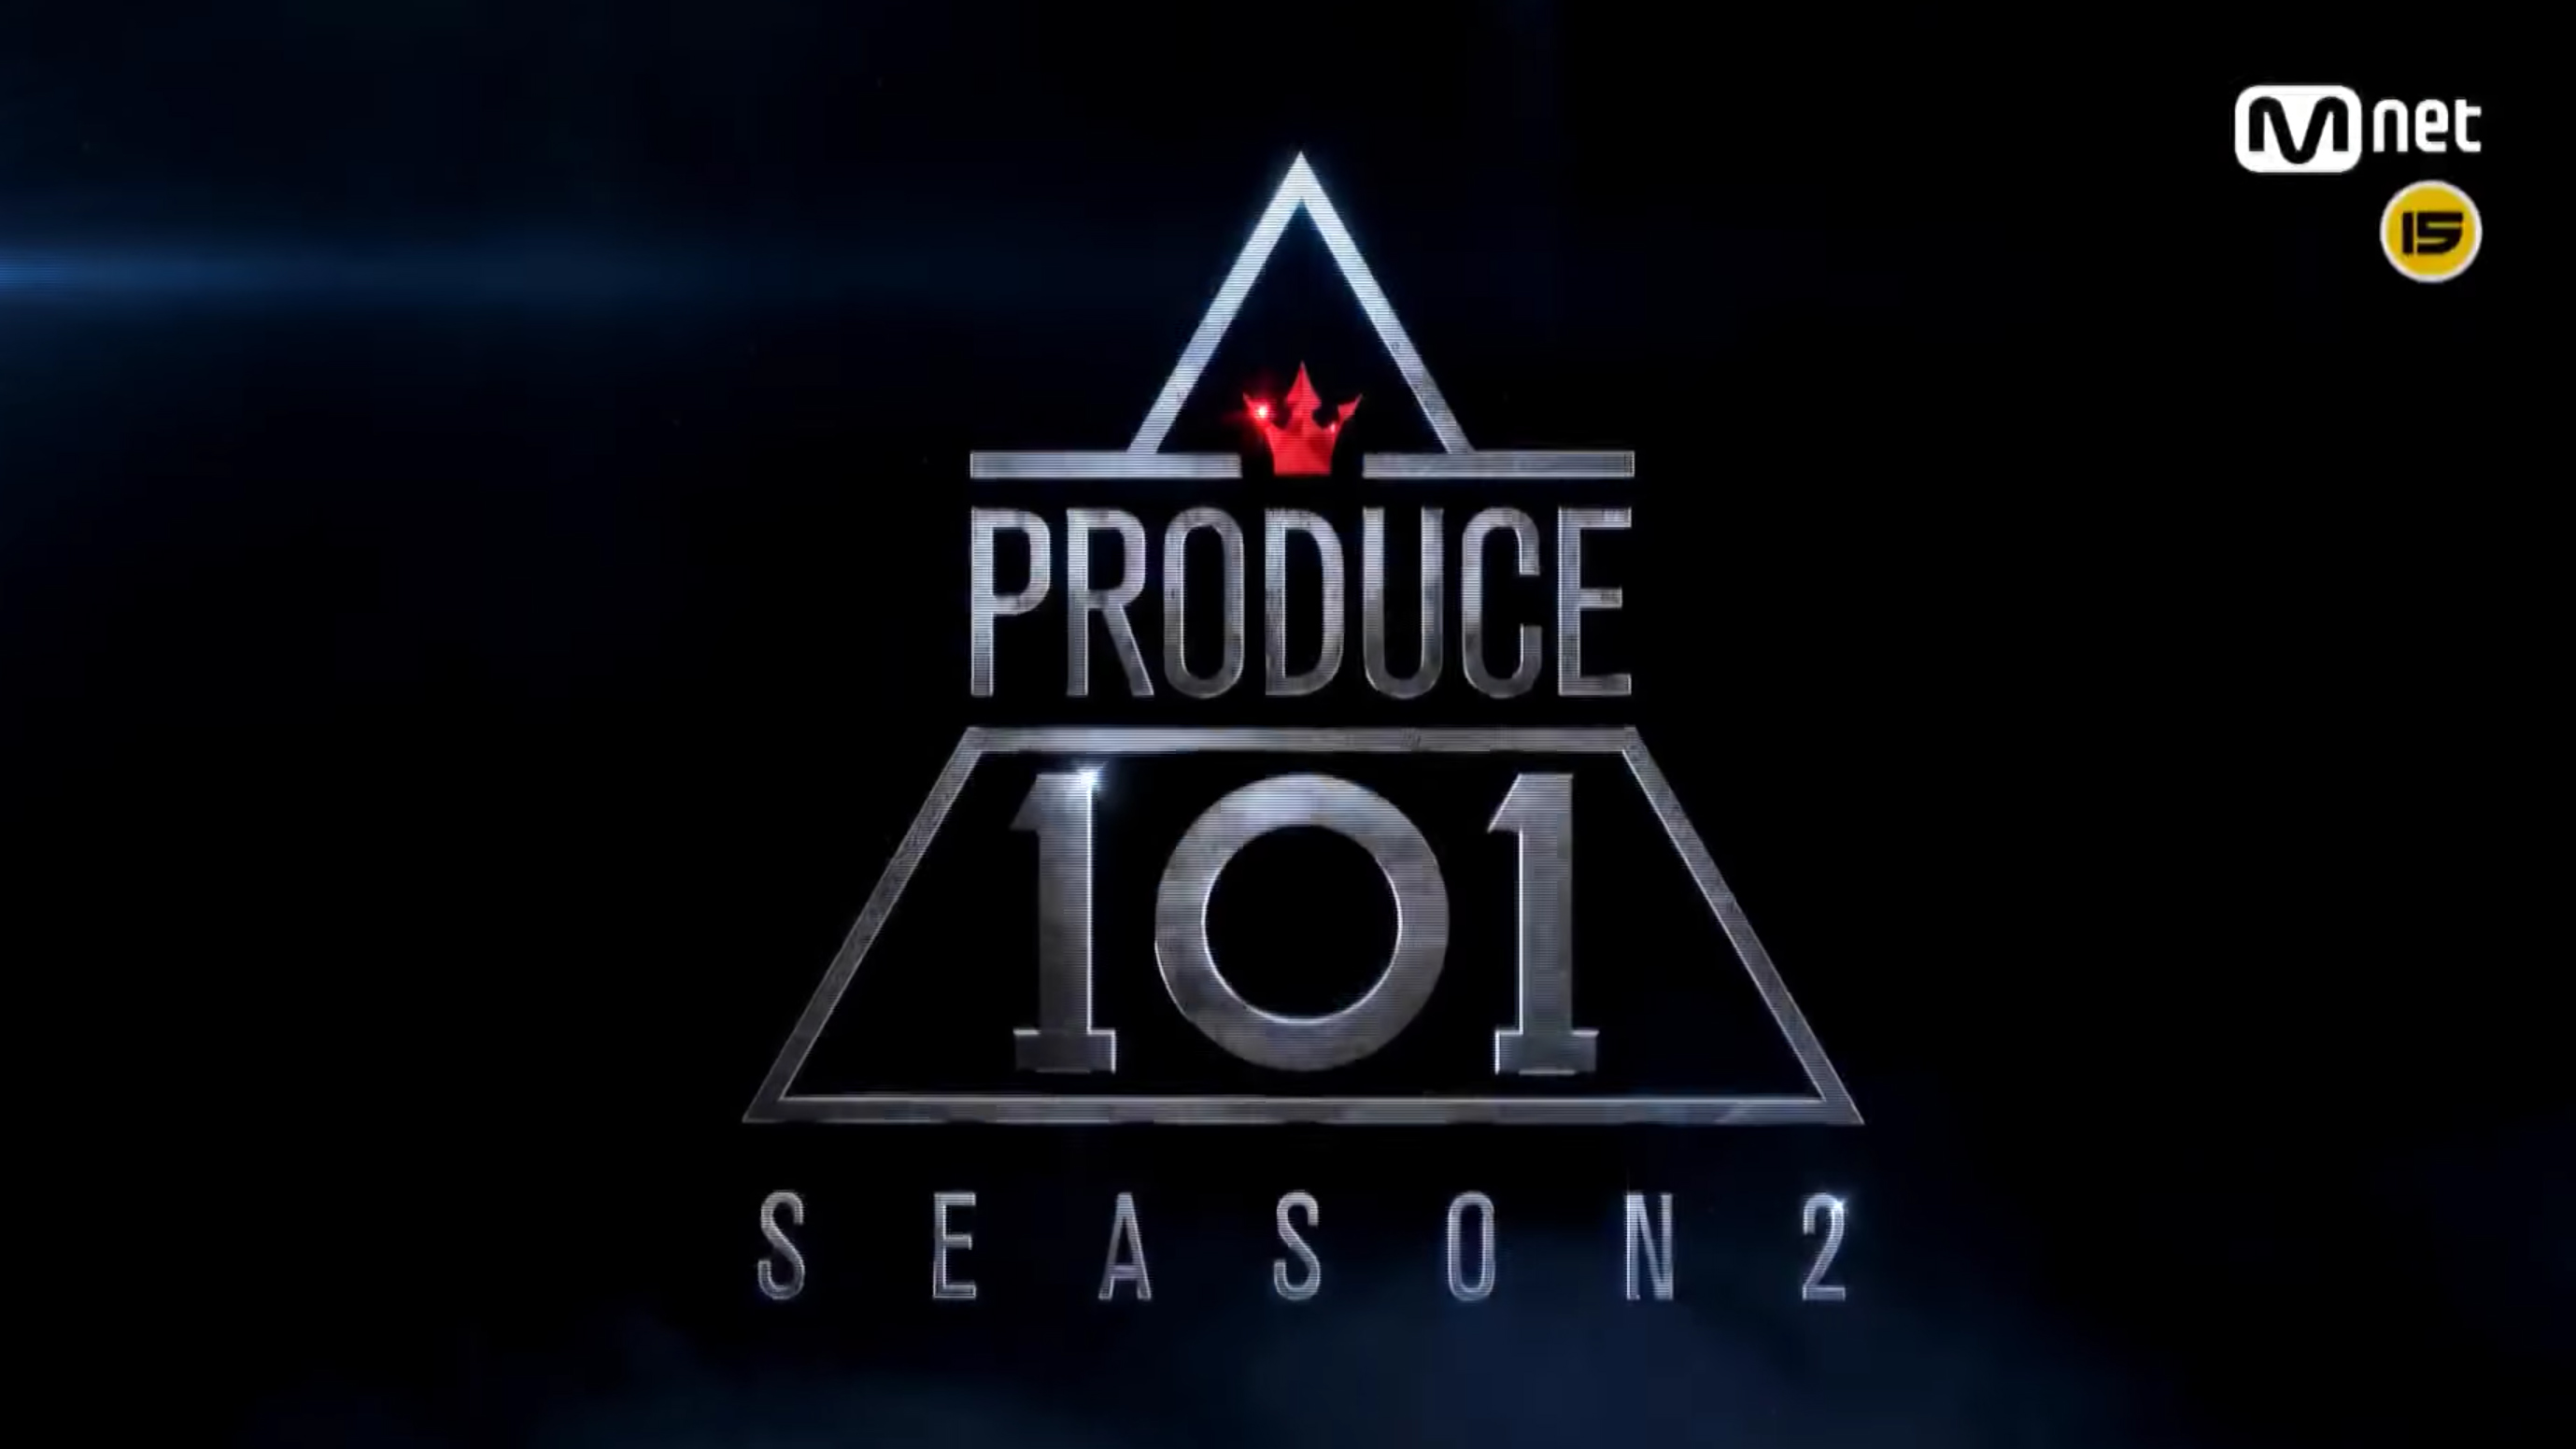 """Produce 101 Season 2"" Tops TV Impact Factor Rankings After Just One Episode"